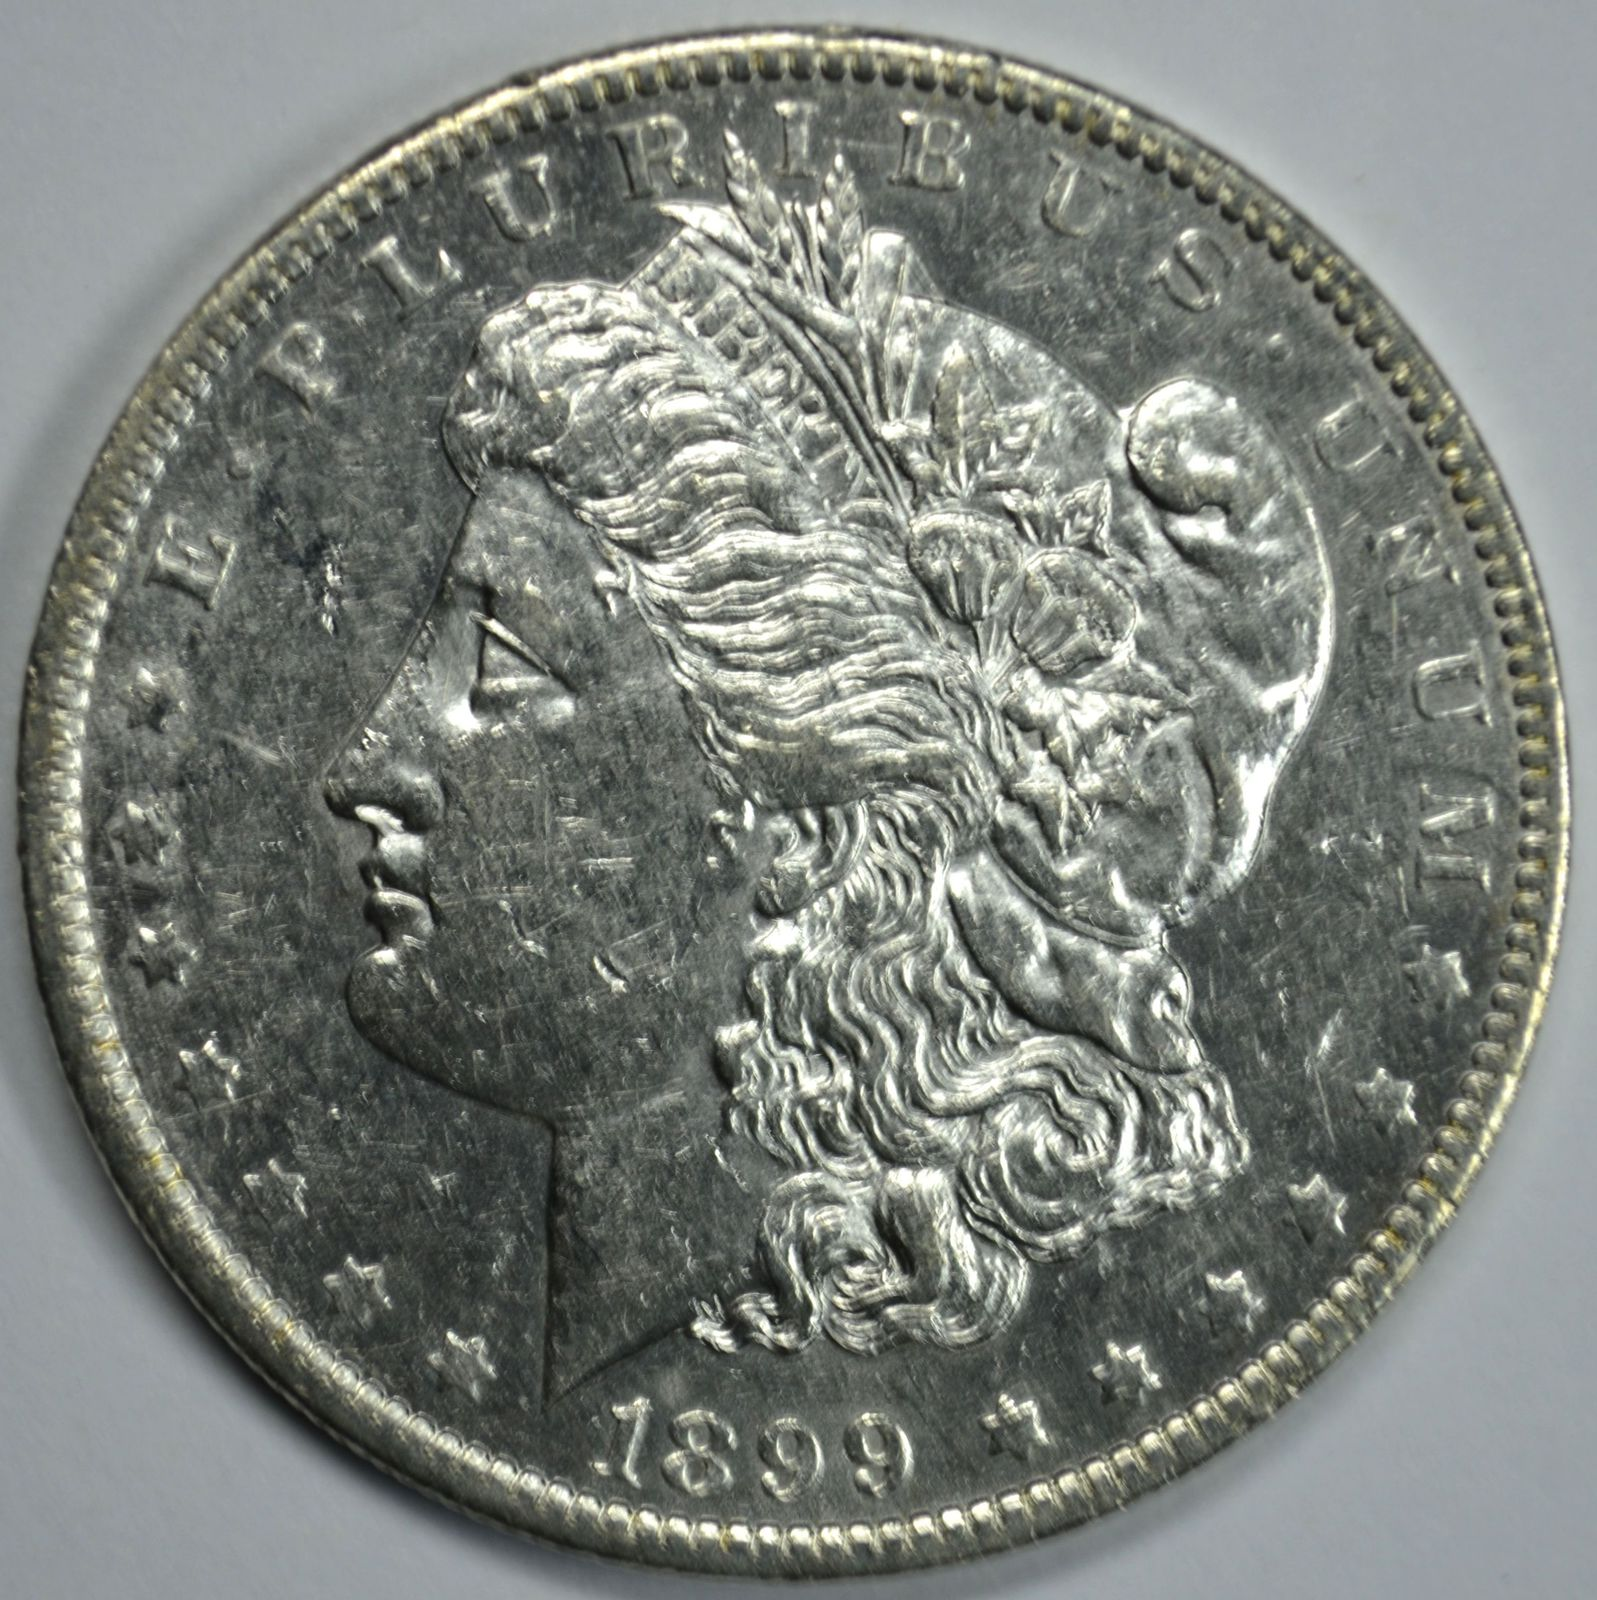 Primary image for 1899 O Morgan silver dollar XF details